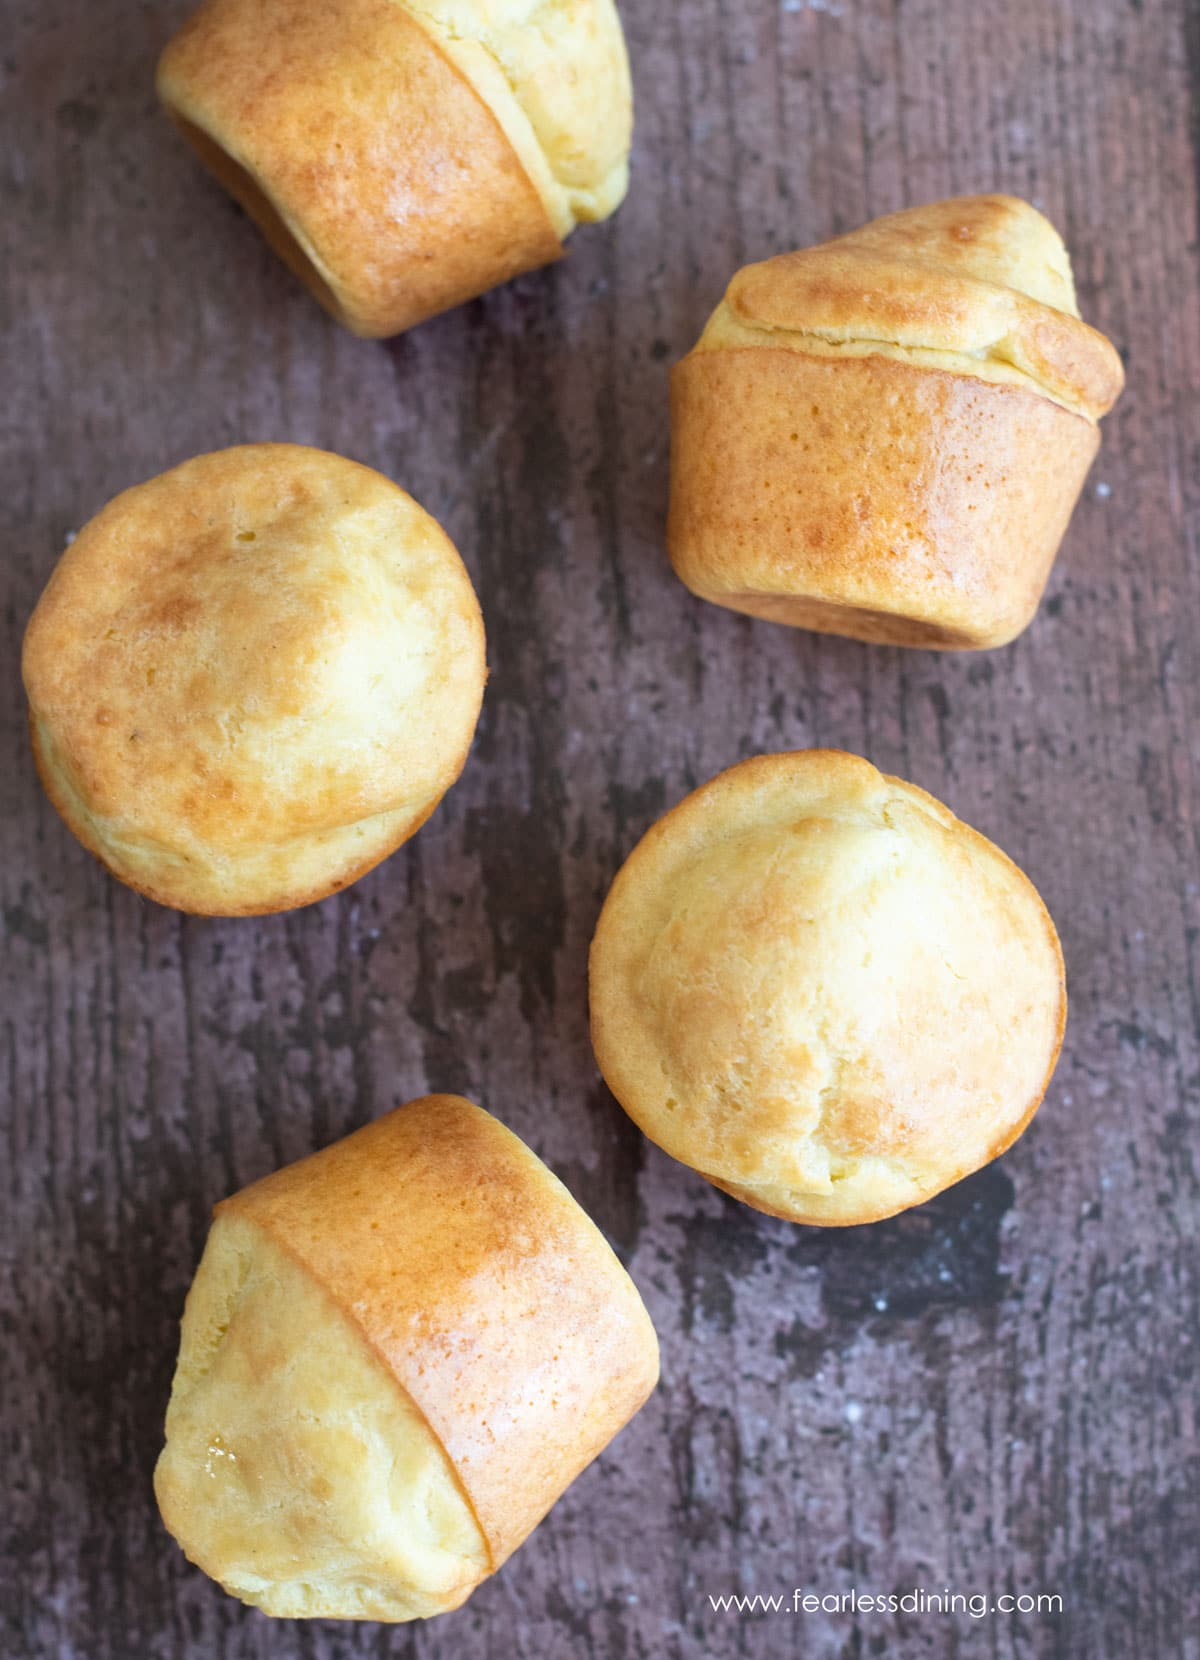 popovers on a table